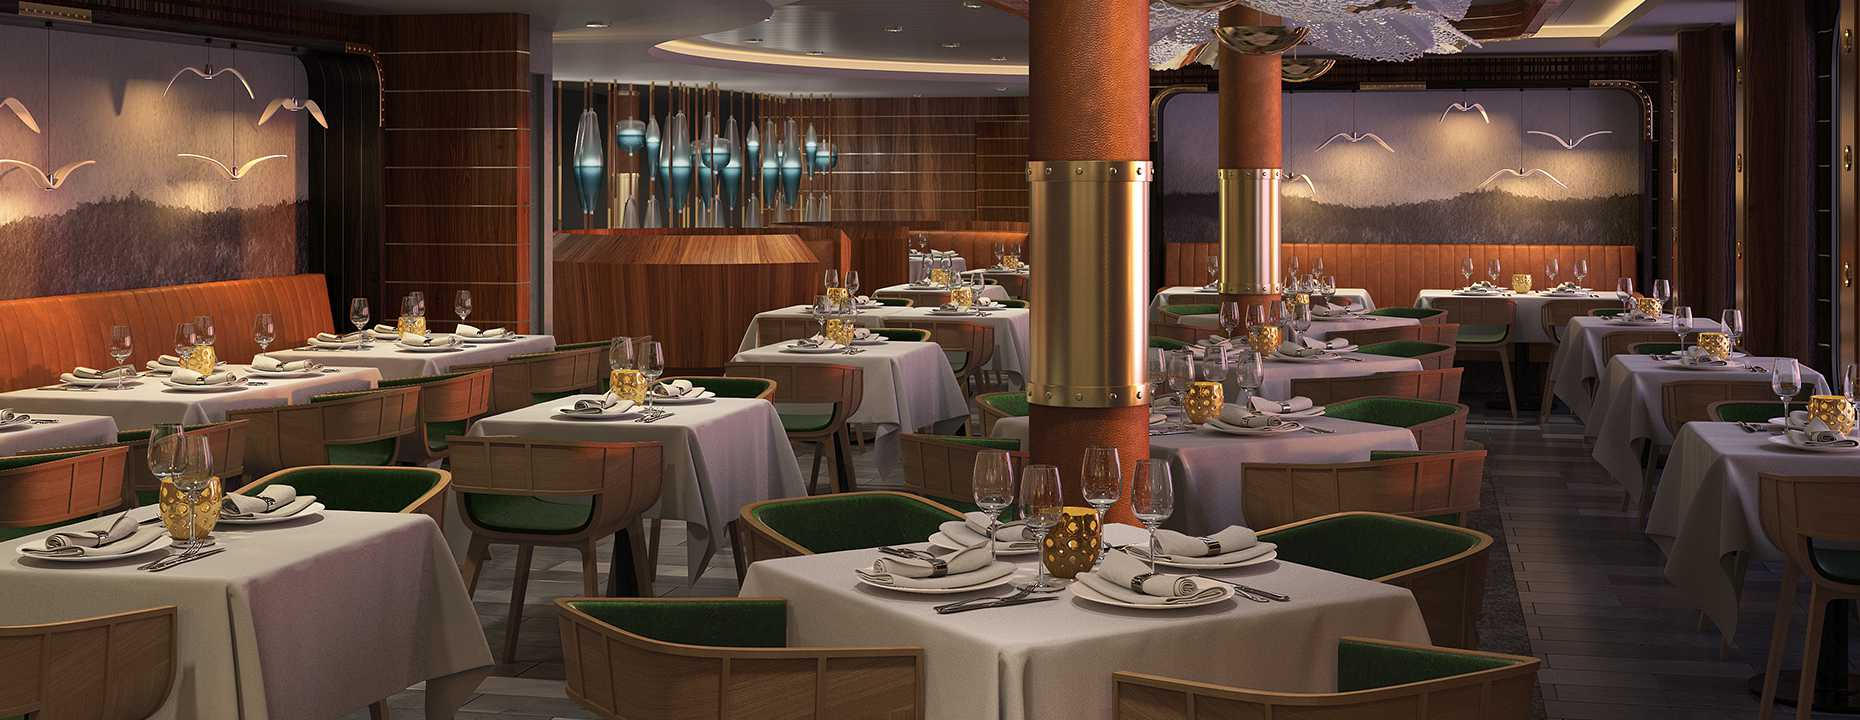 Restaurace na lodi Norwegian Bliss